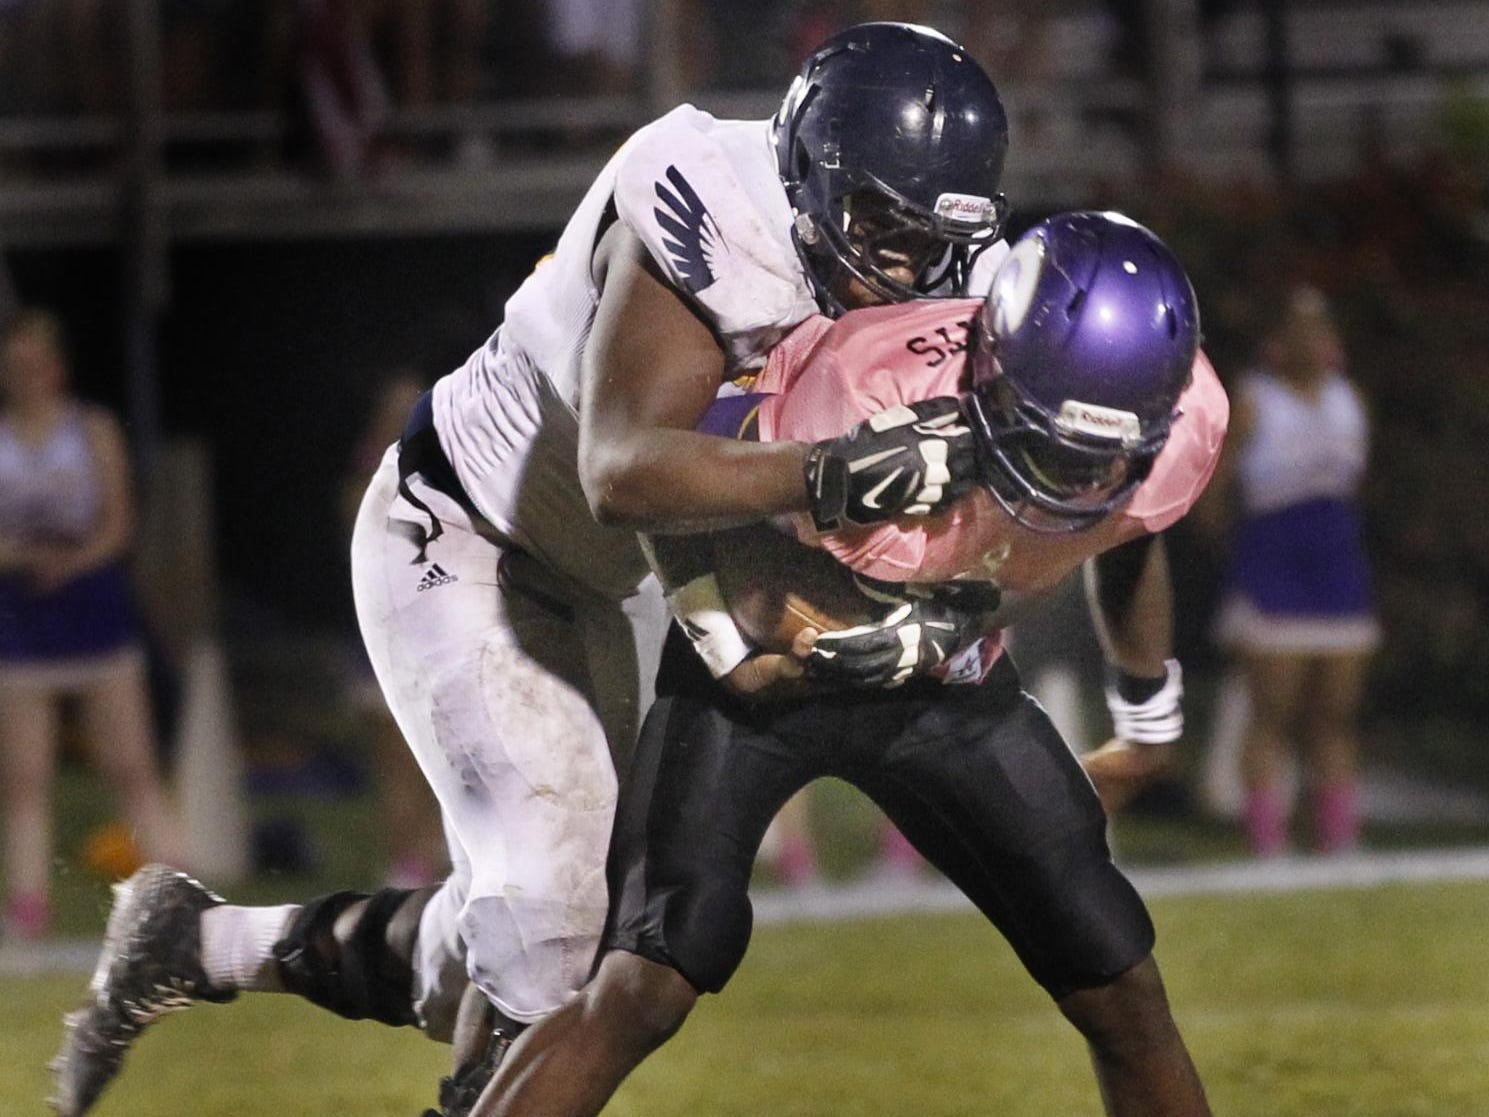 Rakavian Poydras, seen here playing for Northeast two years ago, tackles a Clarksville High player. Poydras, who now plays at CHS, has committed to play college football at the University of Memphis.